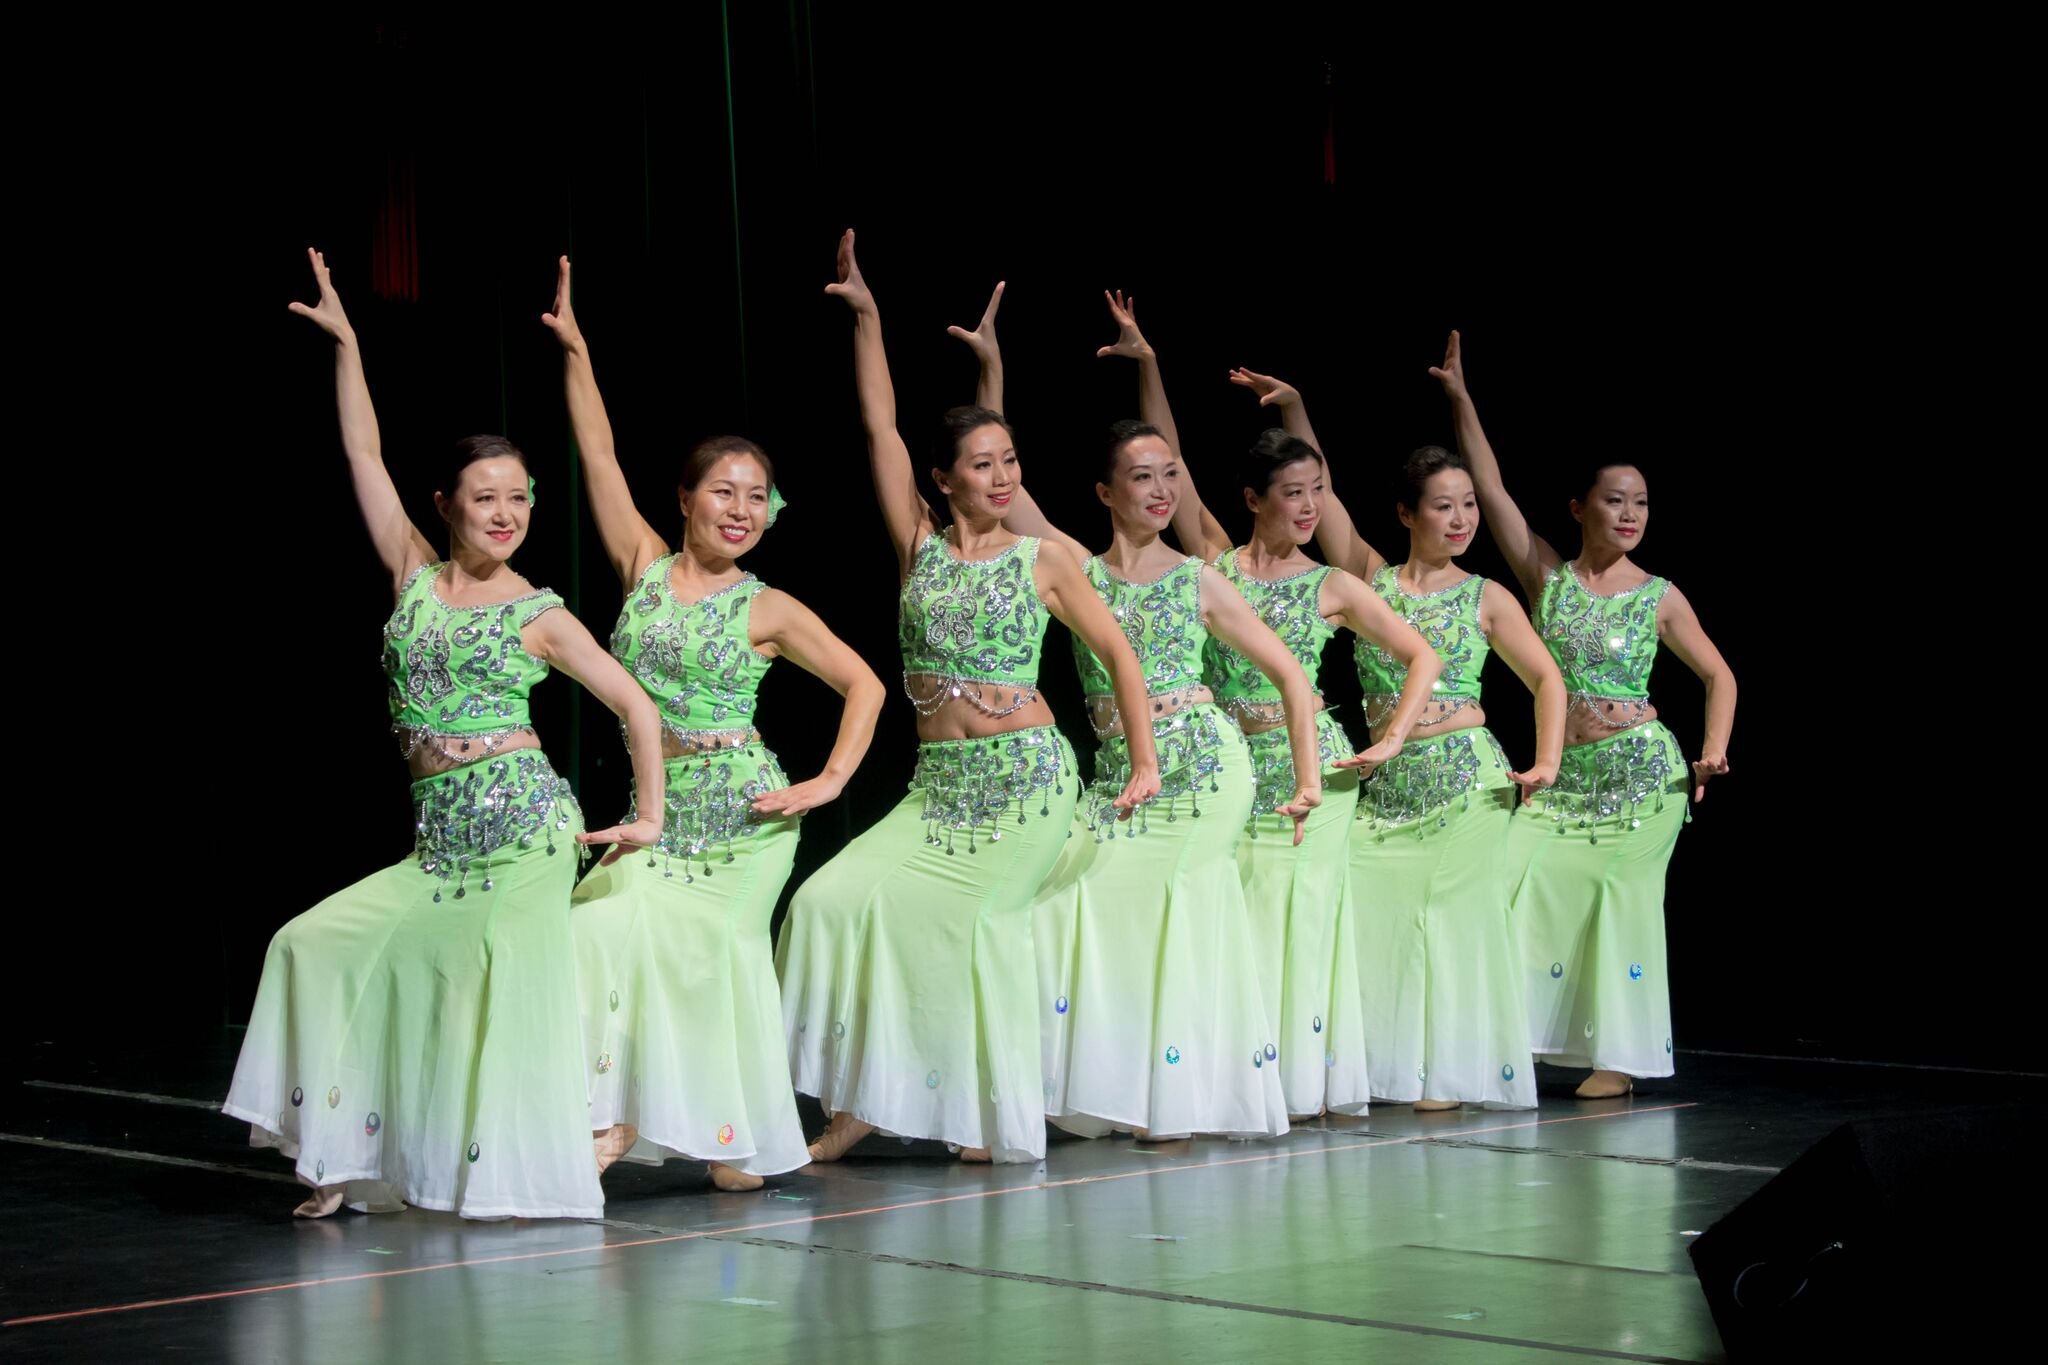 The Long Island Chinese Dance Group performed a dance to a song known as